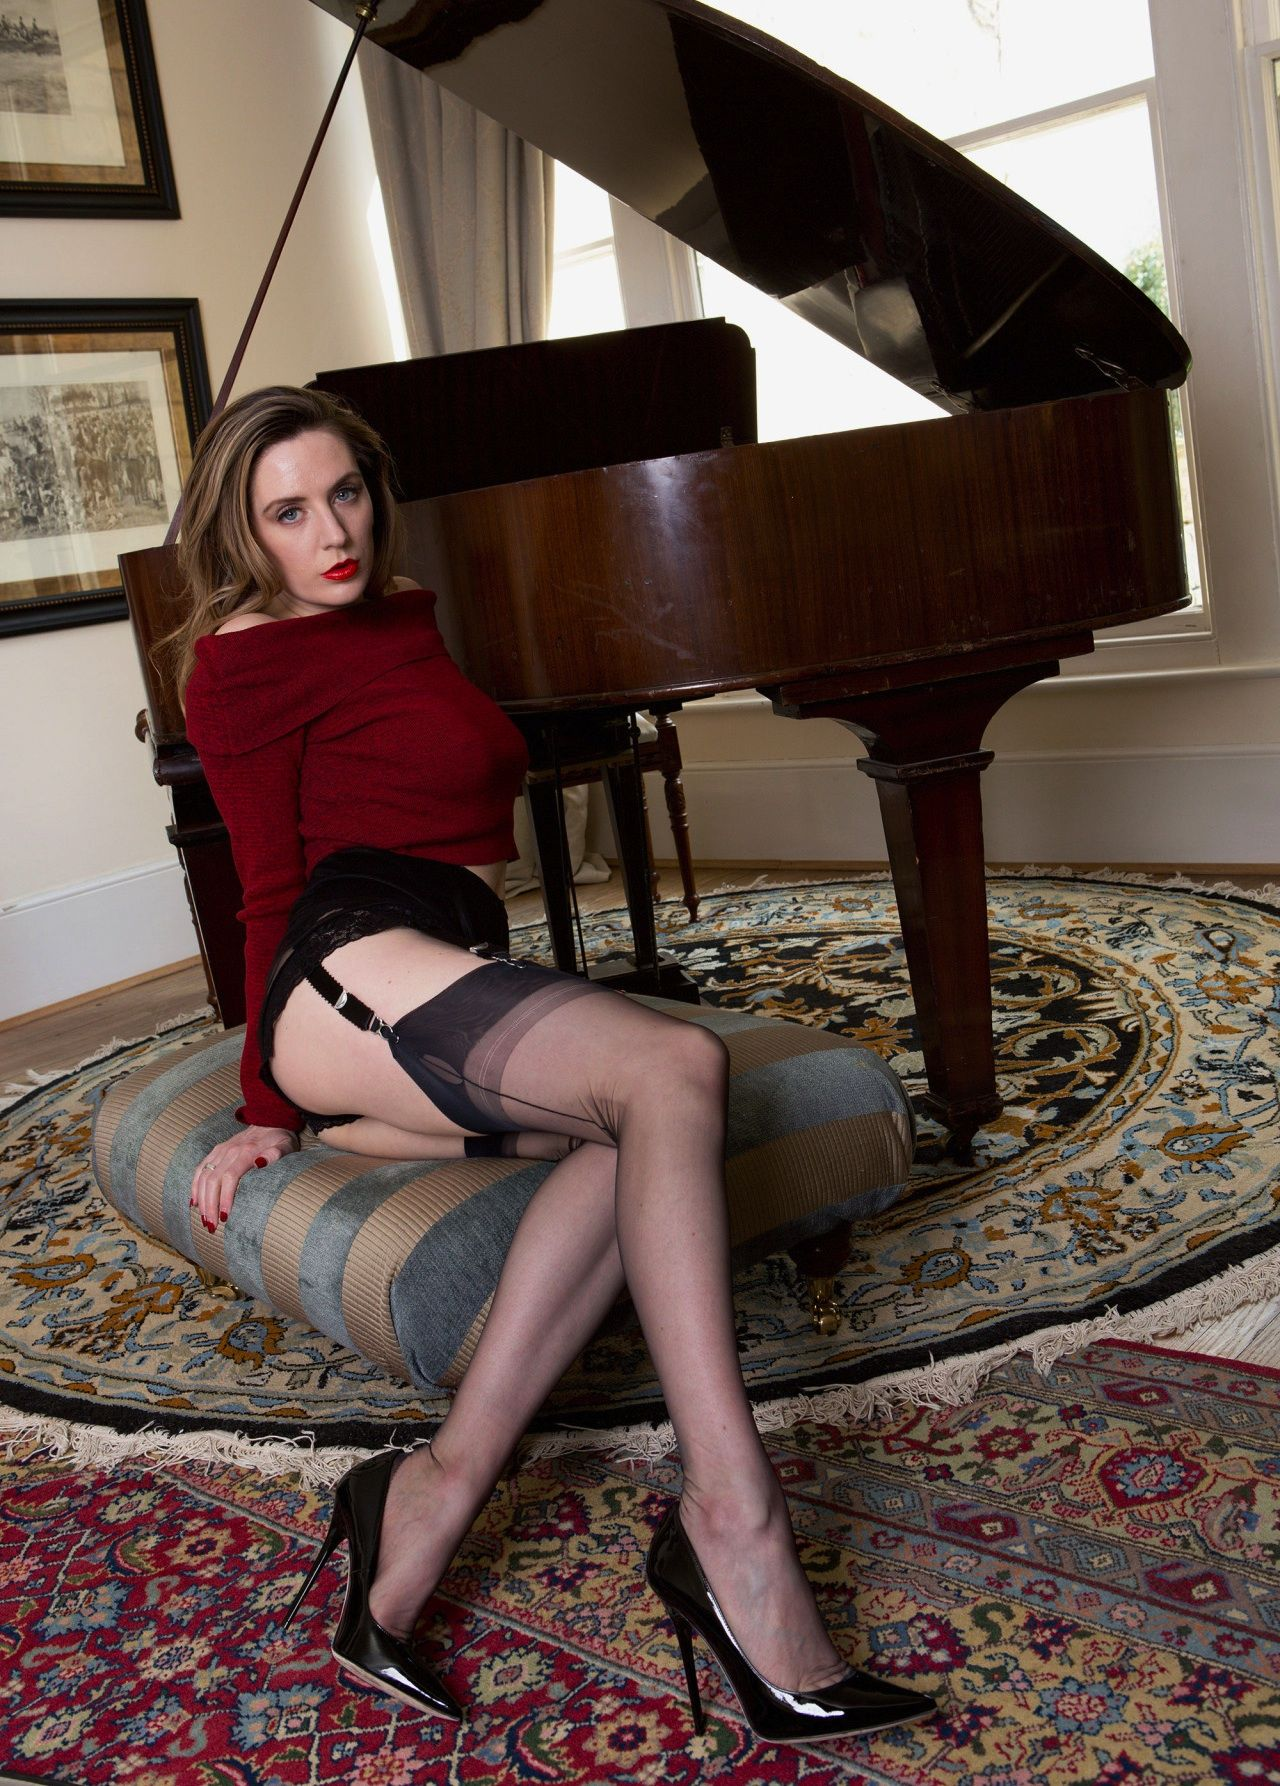 Pin on Vintage lingerie and stockings